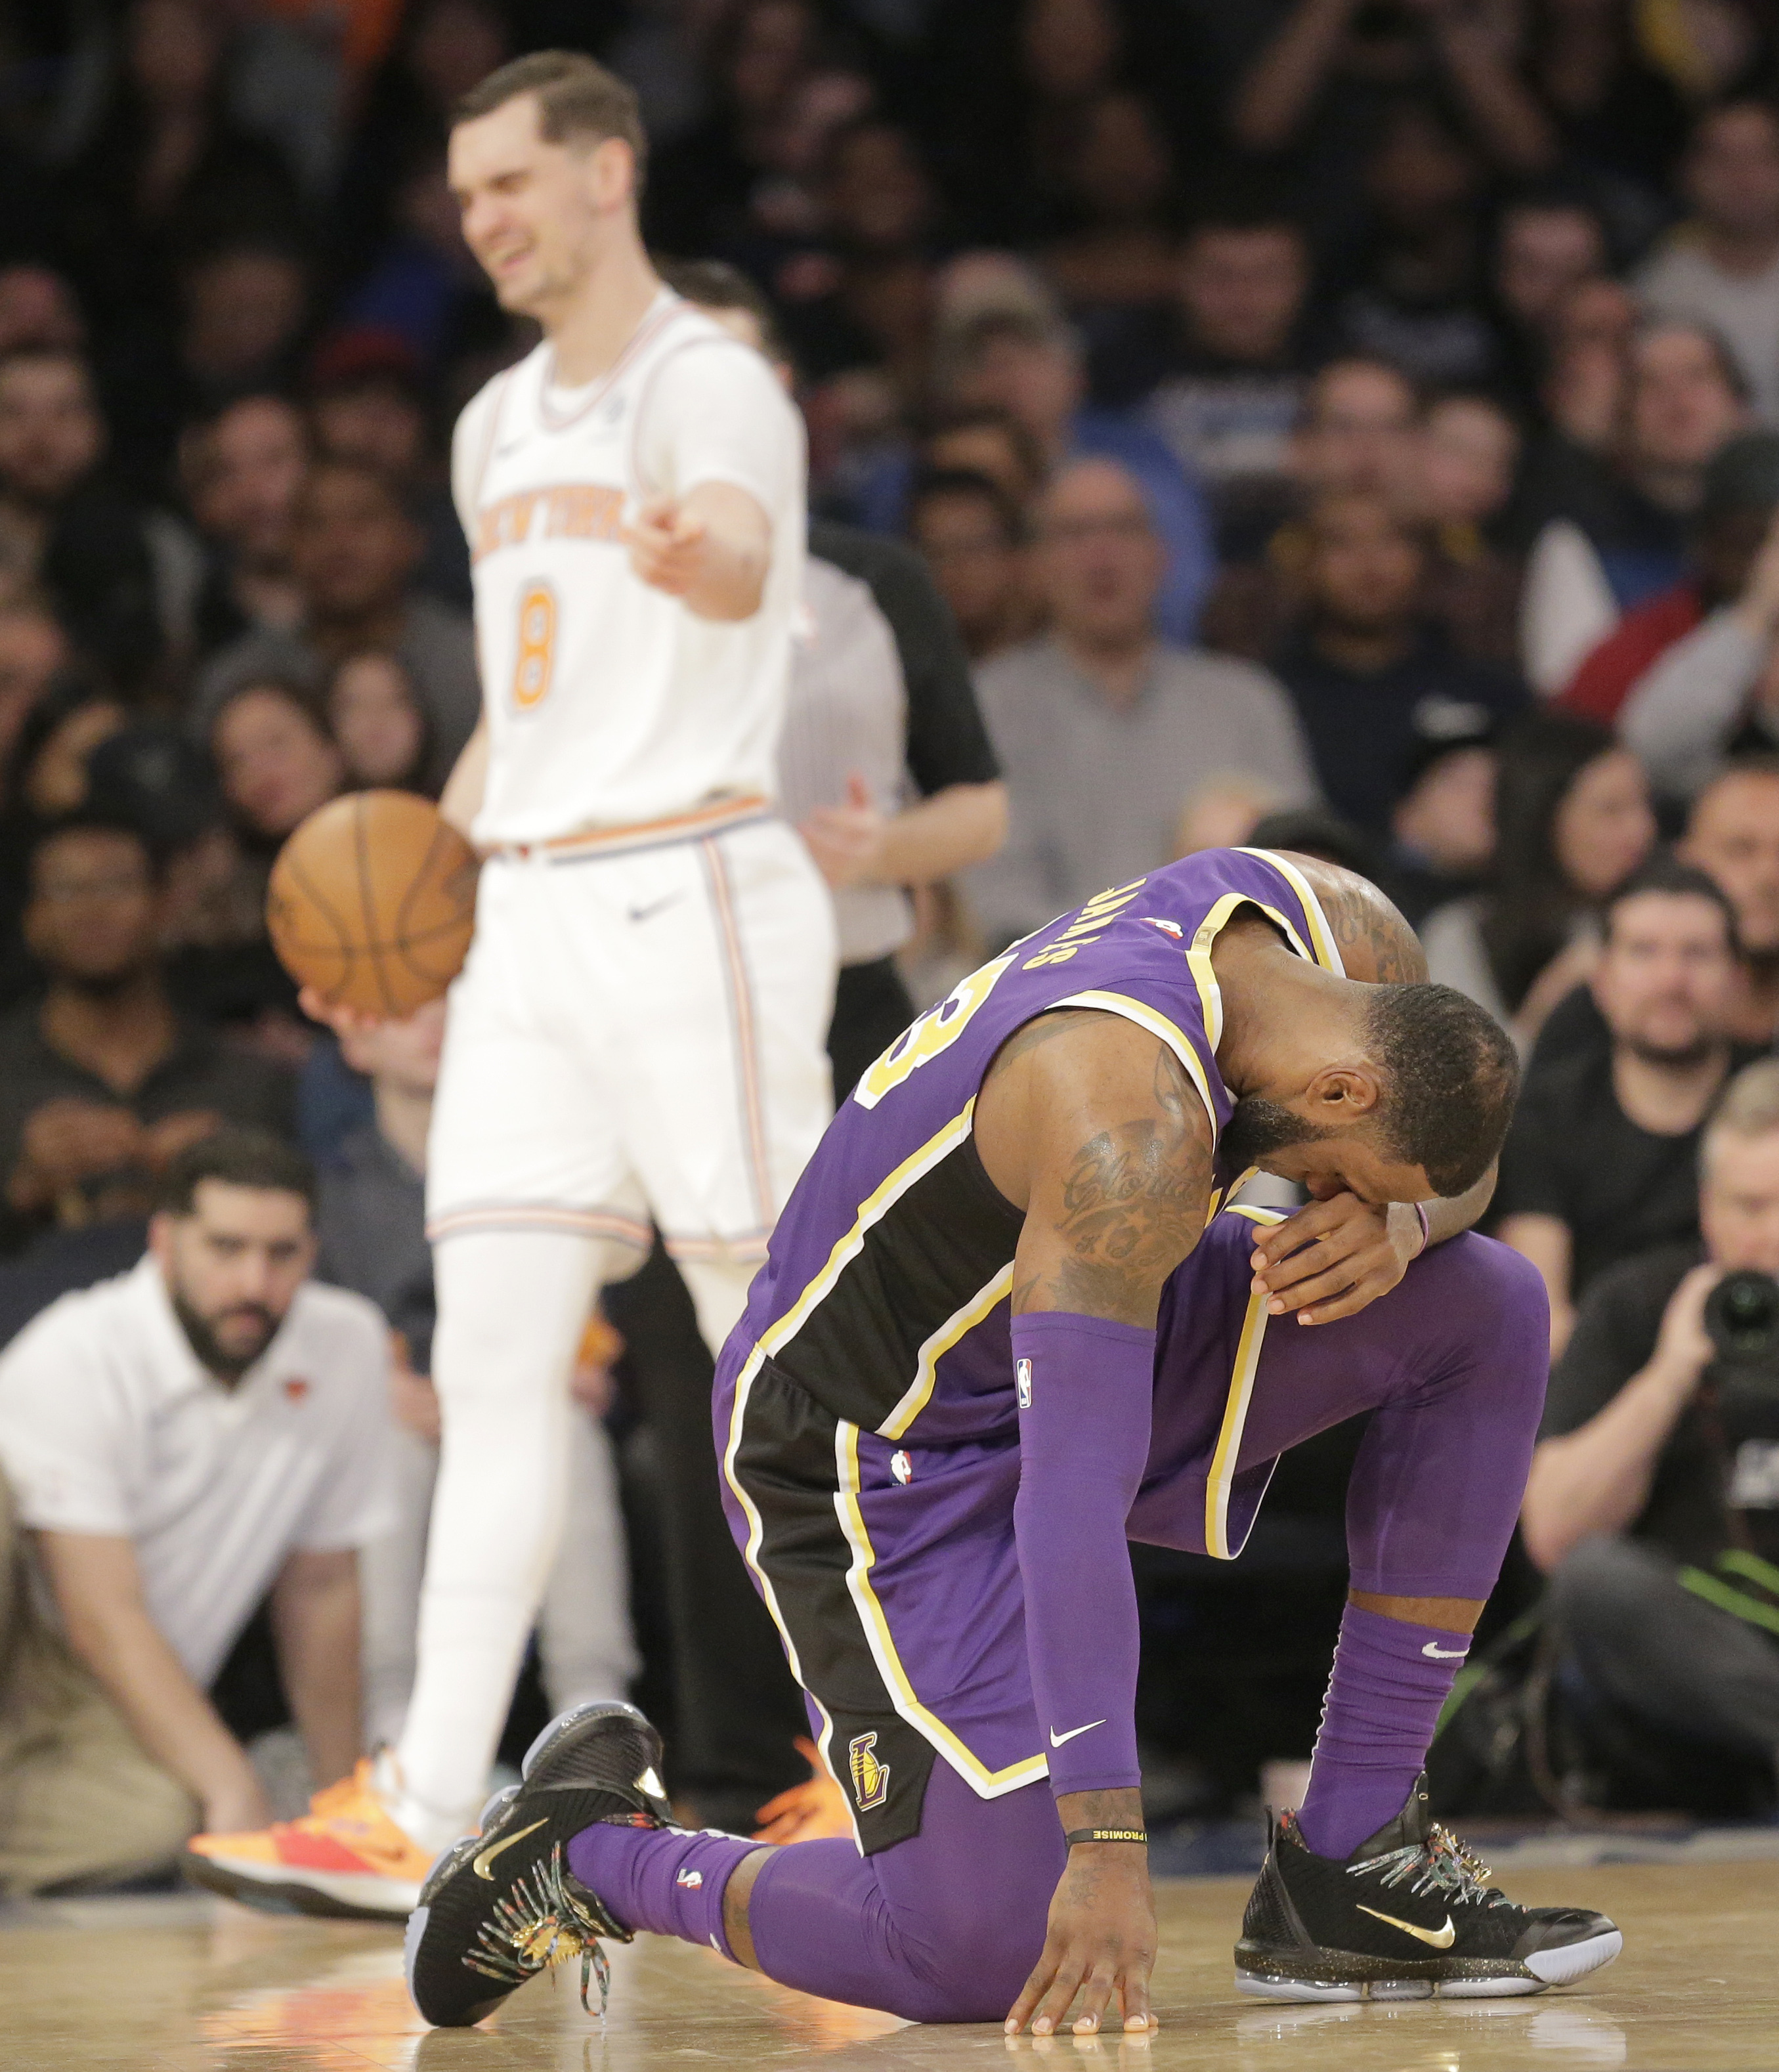 LeBron James' rough outing in Knicks